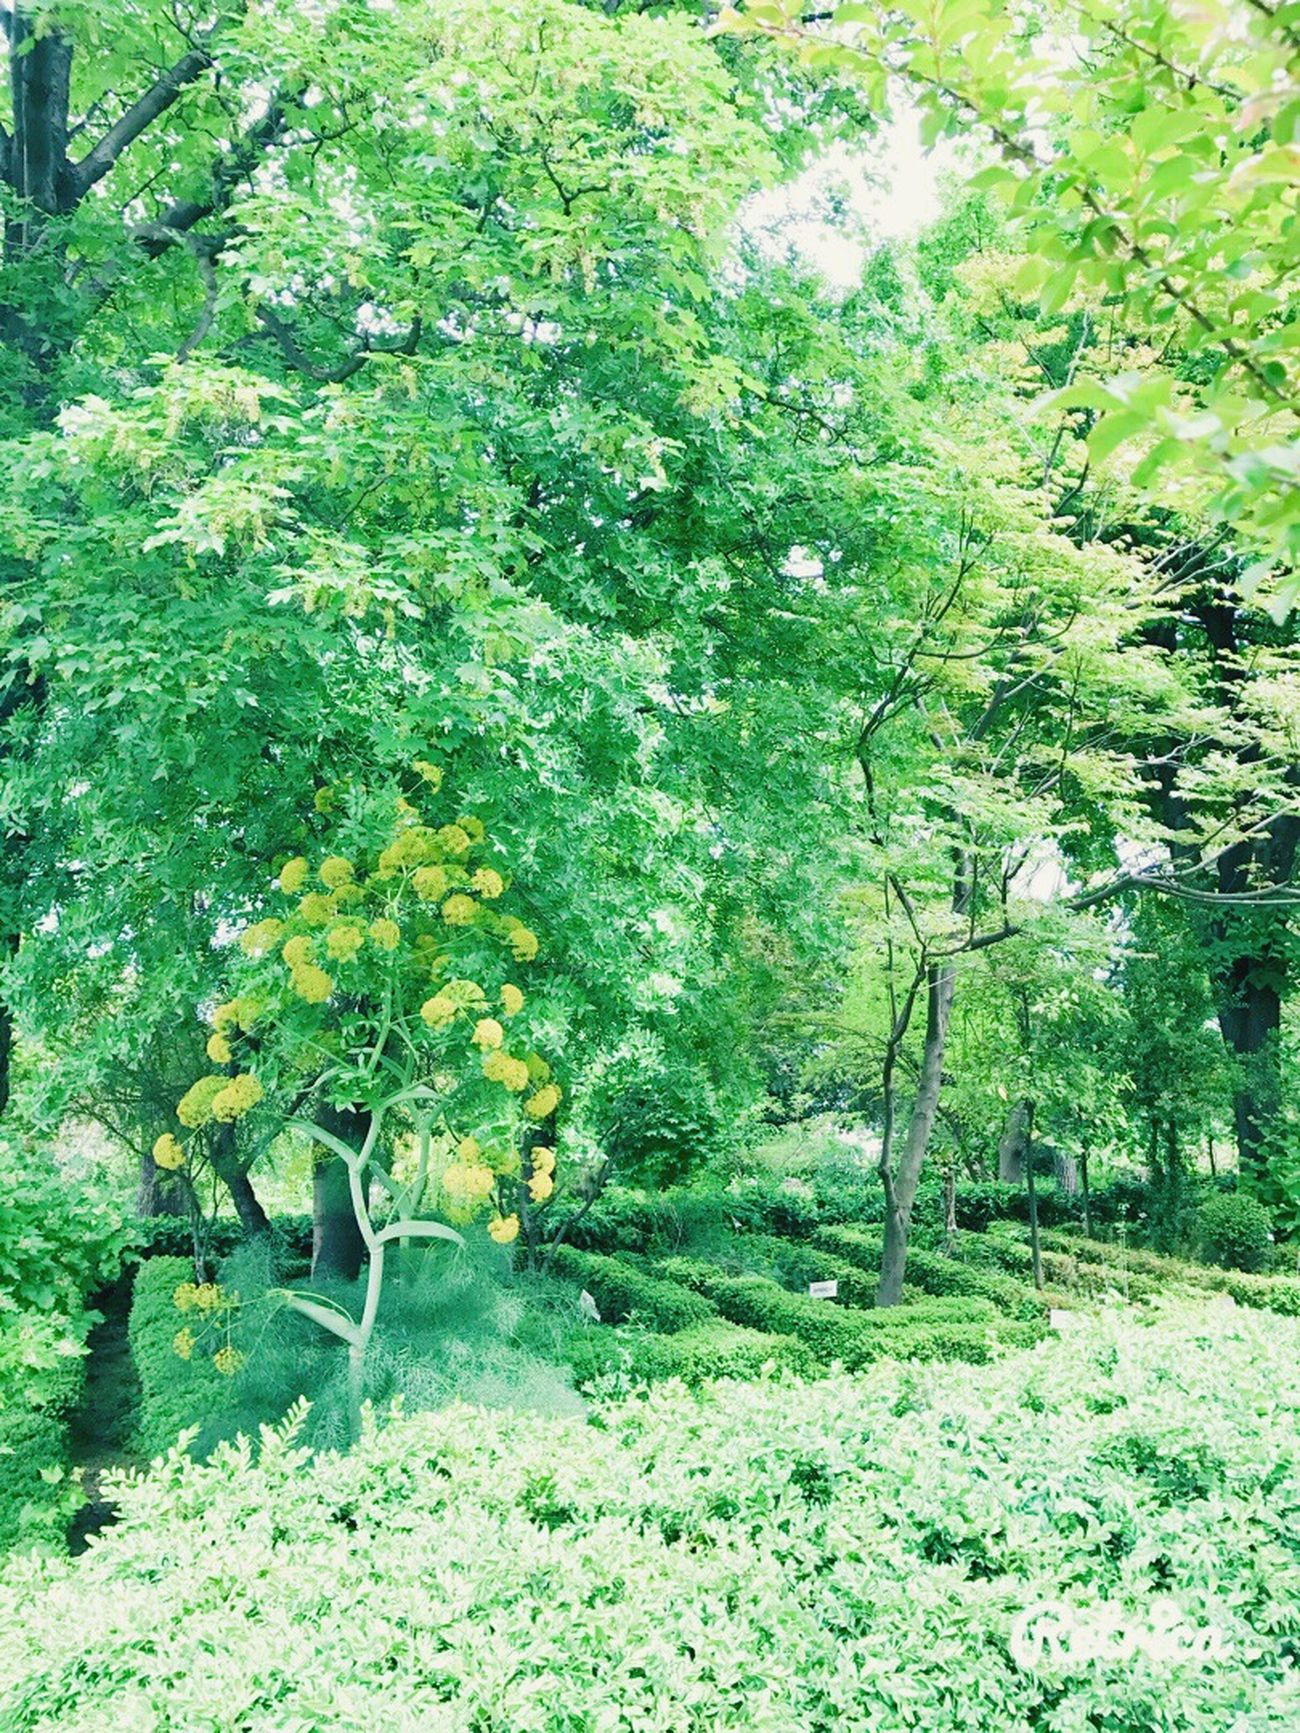 Growth Nature Green Color Green Plant Tree Leaf Beauty In Nature Tranquility Day No People Outdoors Beautiful Springtime ☘️🍀☀️✨ Freshness Arboretum Sunlight ☀✨ Field Tranquil Scene Foliage Branch